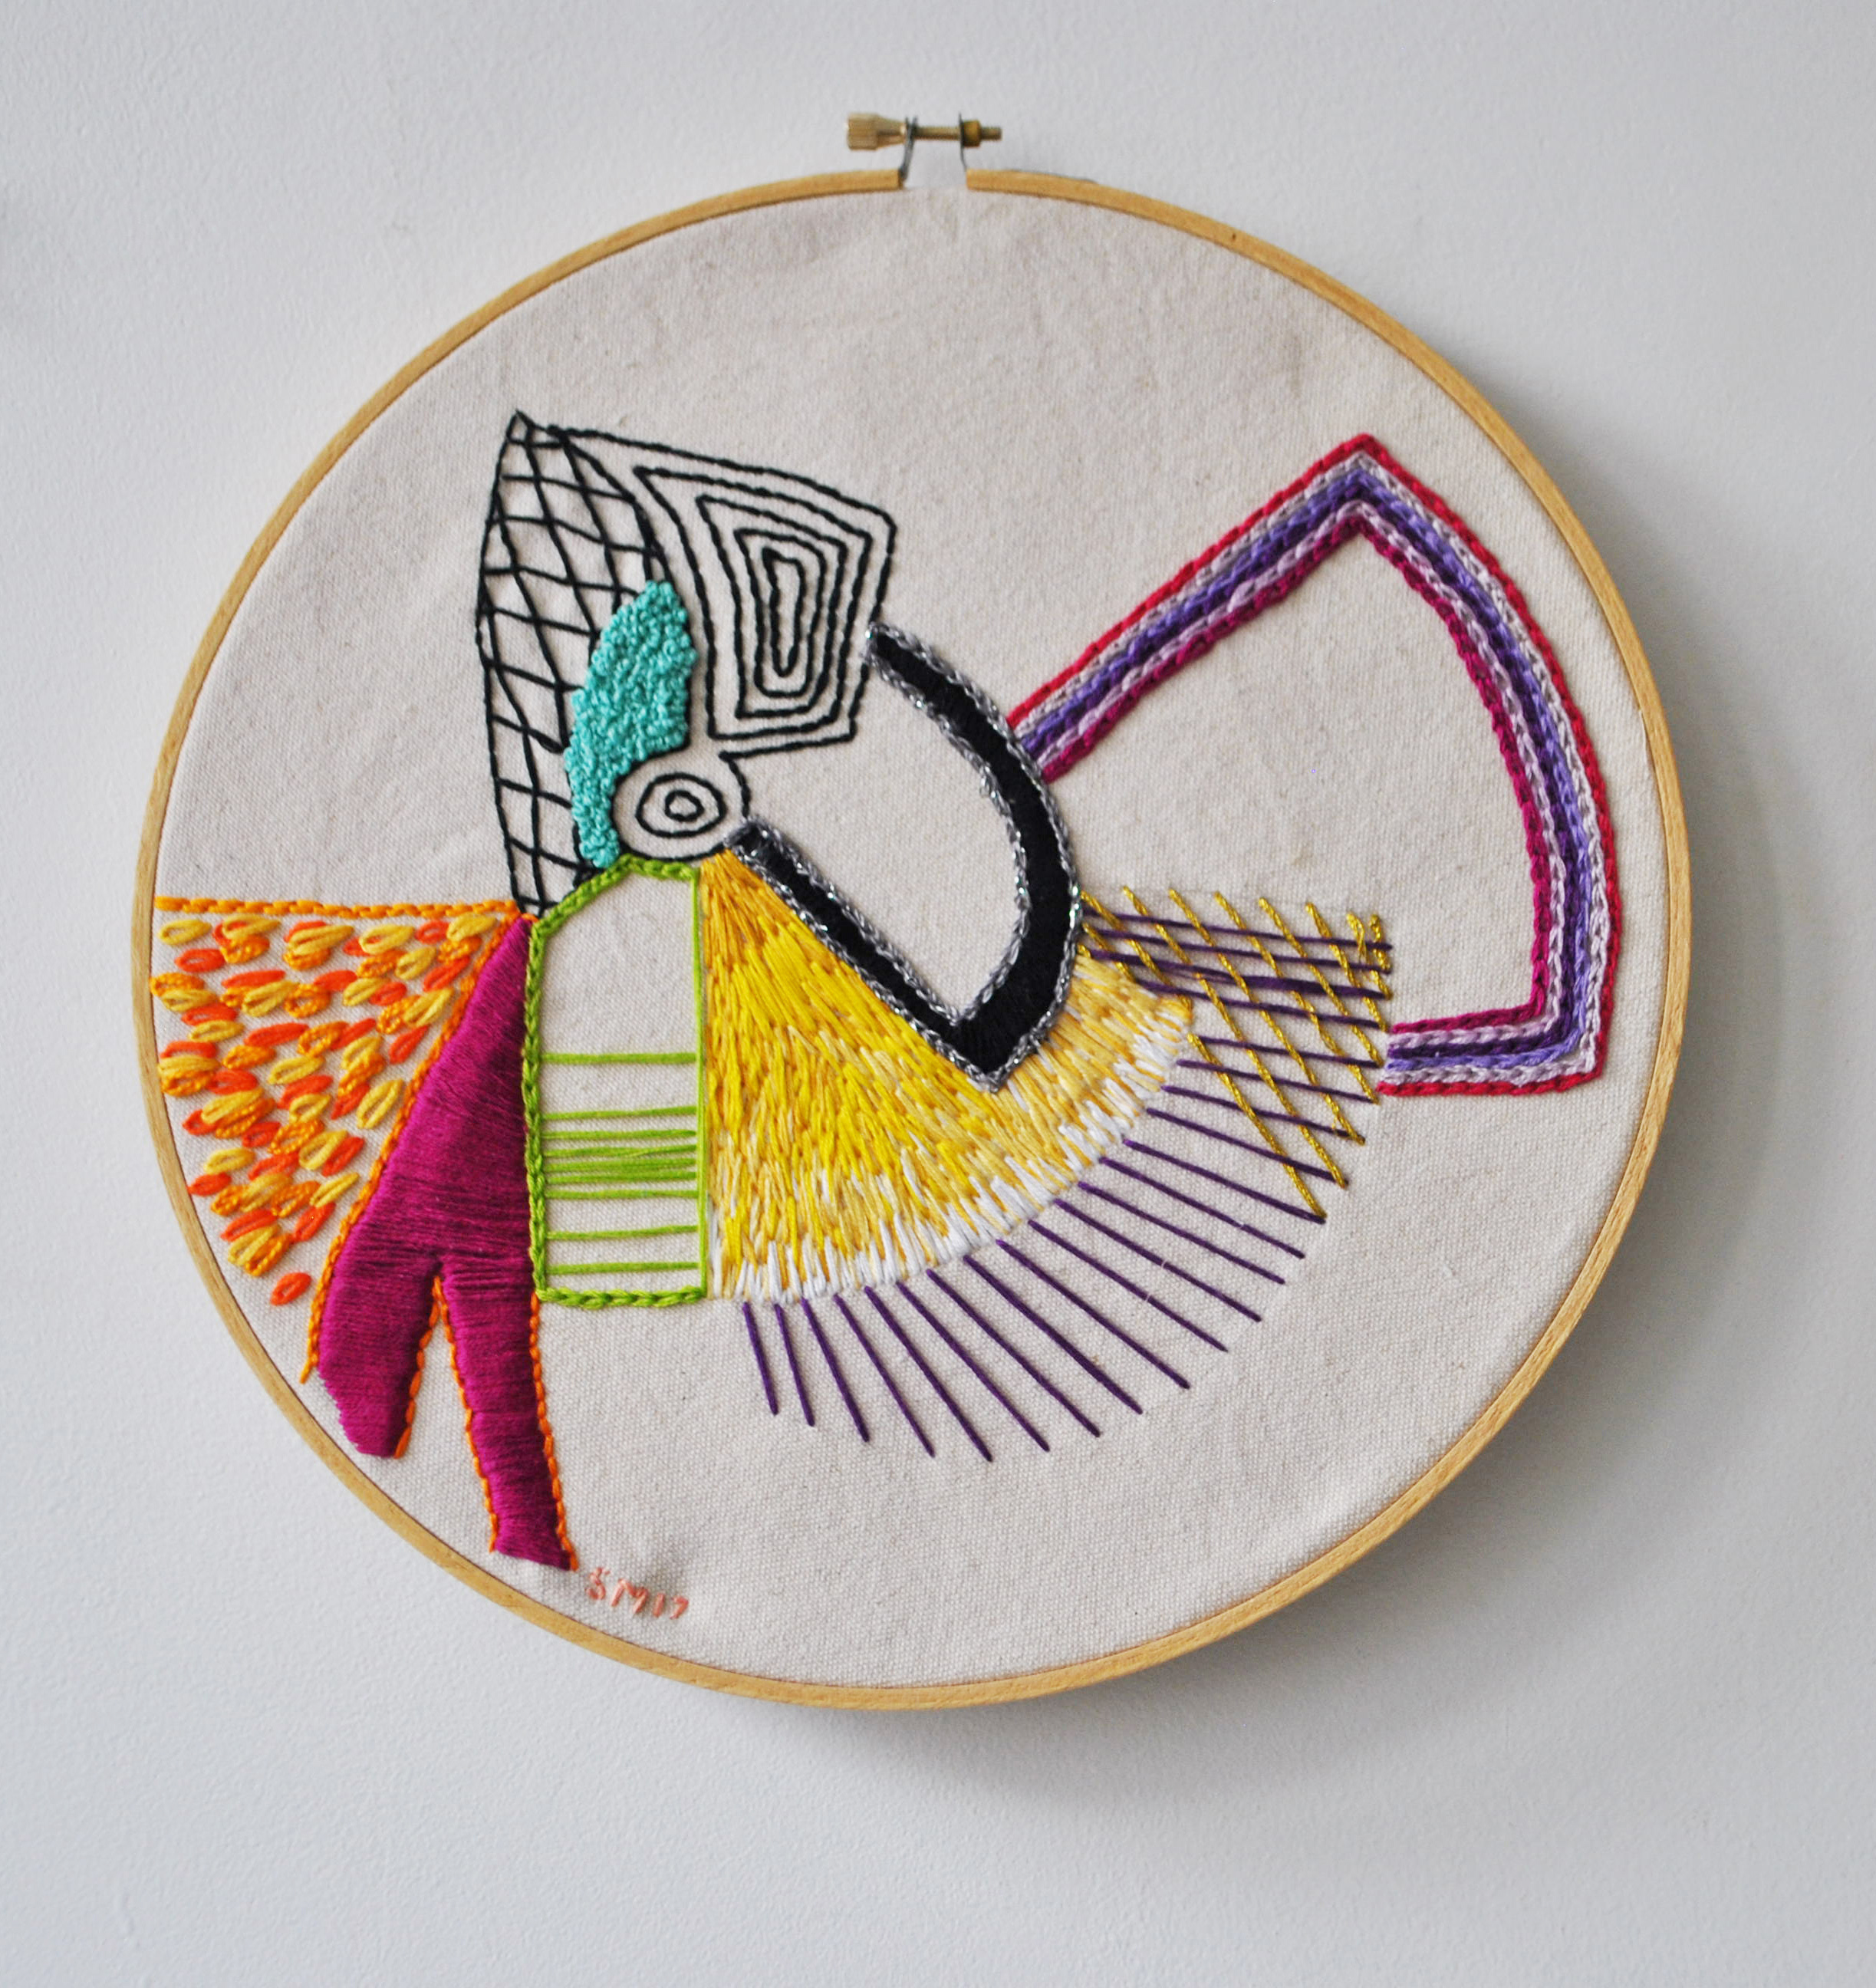 hand embroidery, embroidery, Sarah Magida, design, abstract